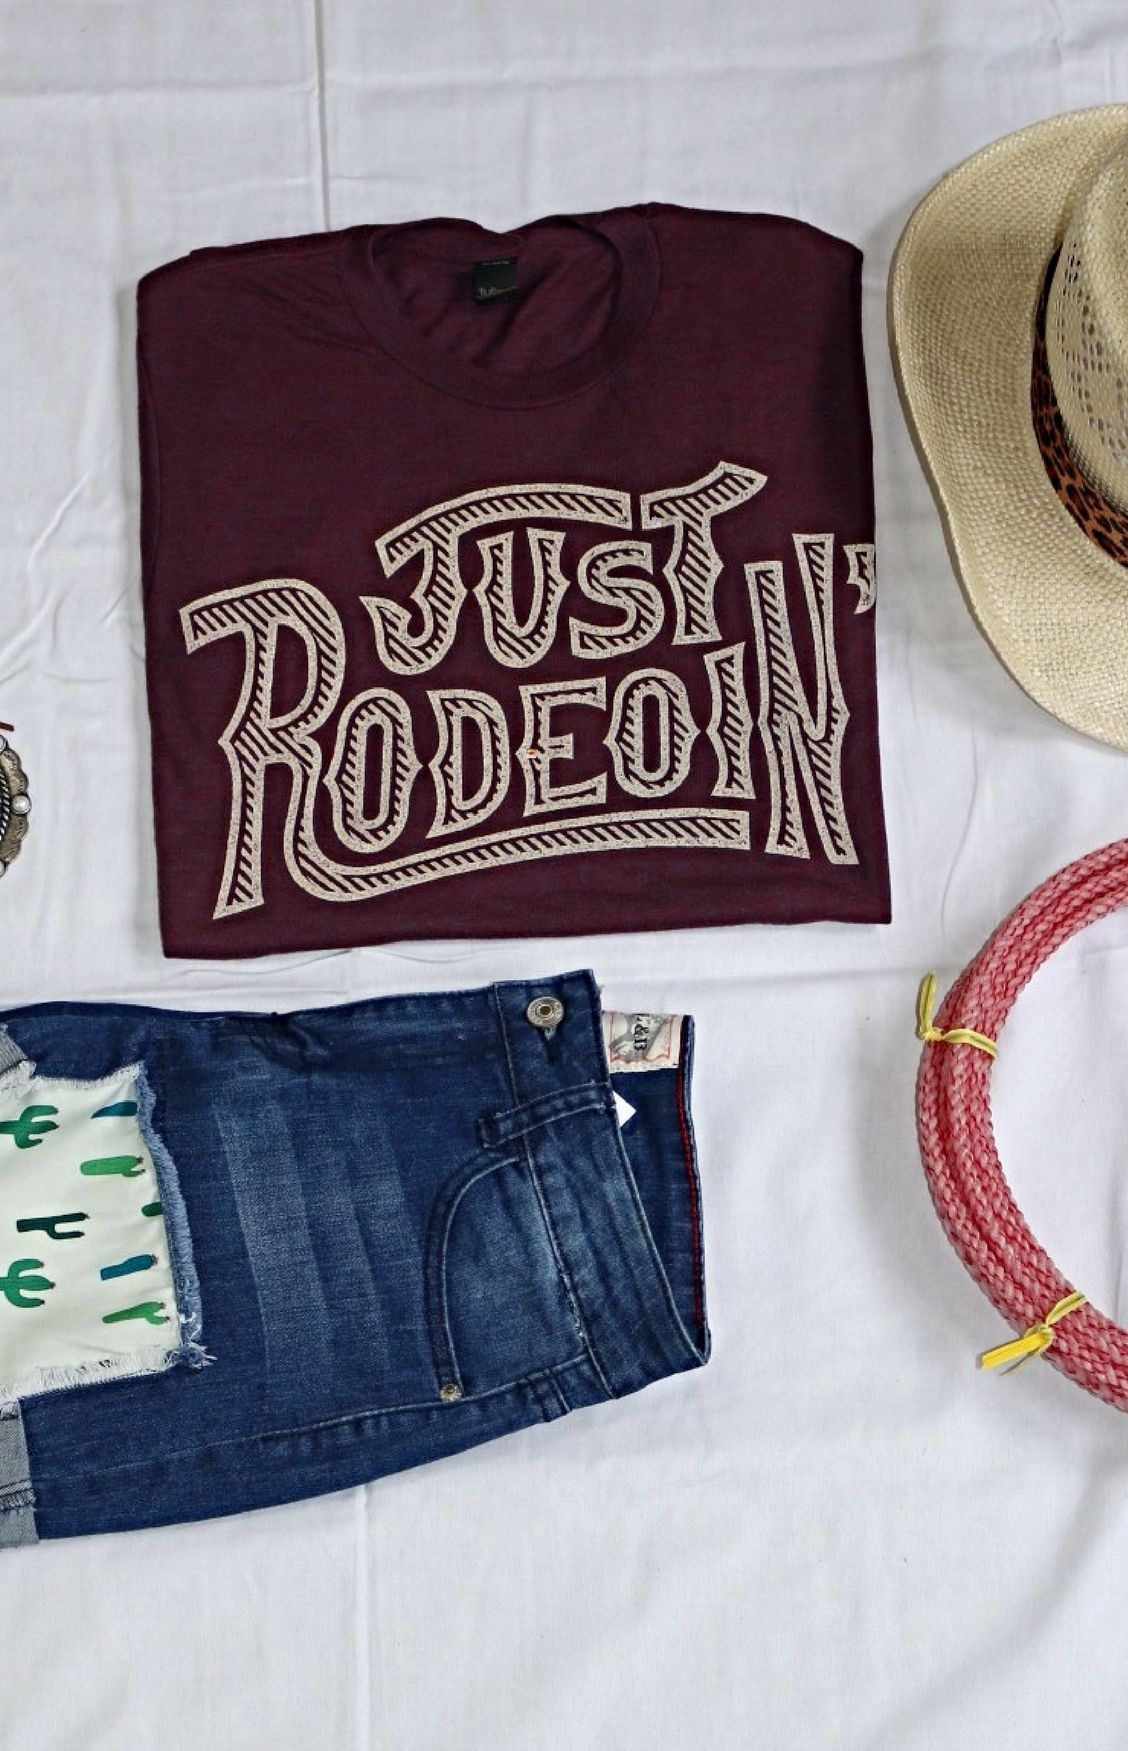 2516adbbc Dale Brisby Just Rodeo'in Tee | C l o t h e s | Dale brisby, Country ...